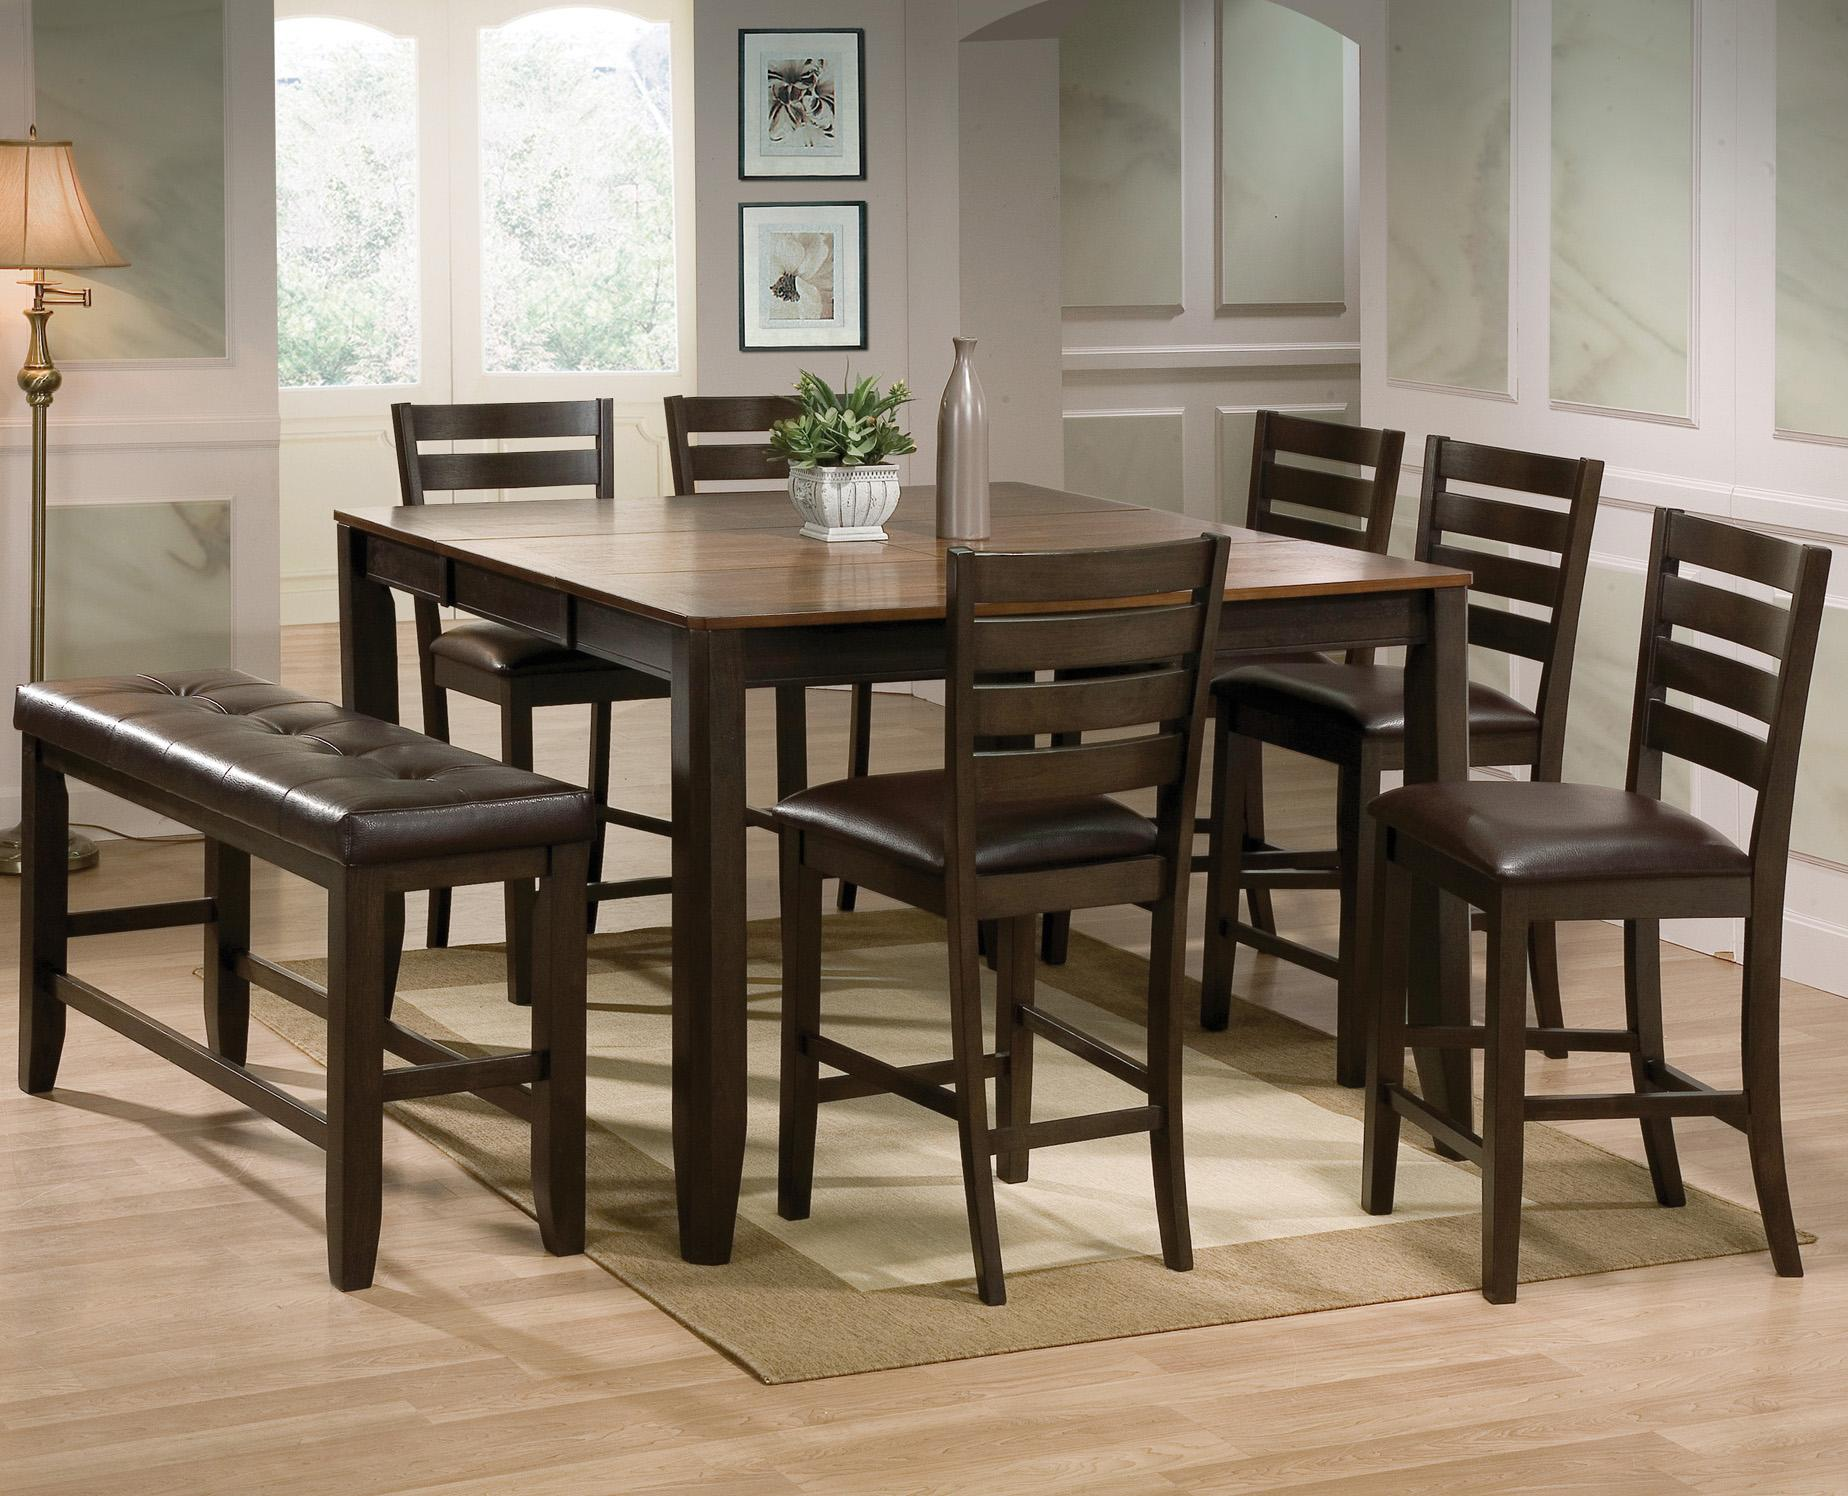 Crown Mark Elliott 7 Piece Dining Table And Chairs Set With Bench    Furniture Fair   North Carolina   Table U0026 Chair Set With Bench  Jacksonville, Greenville, ...